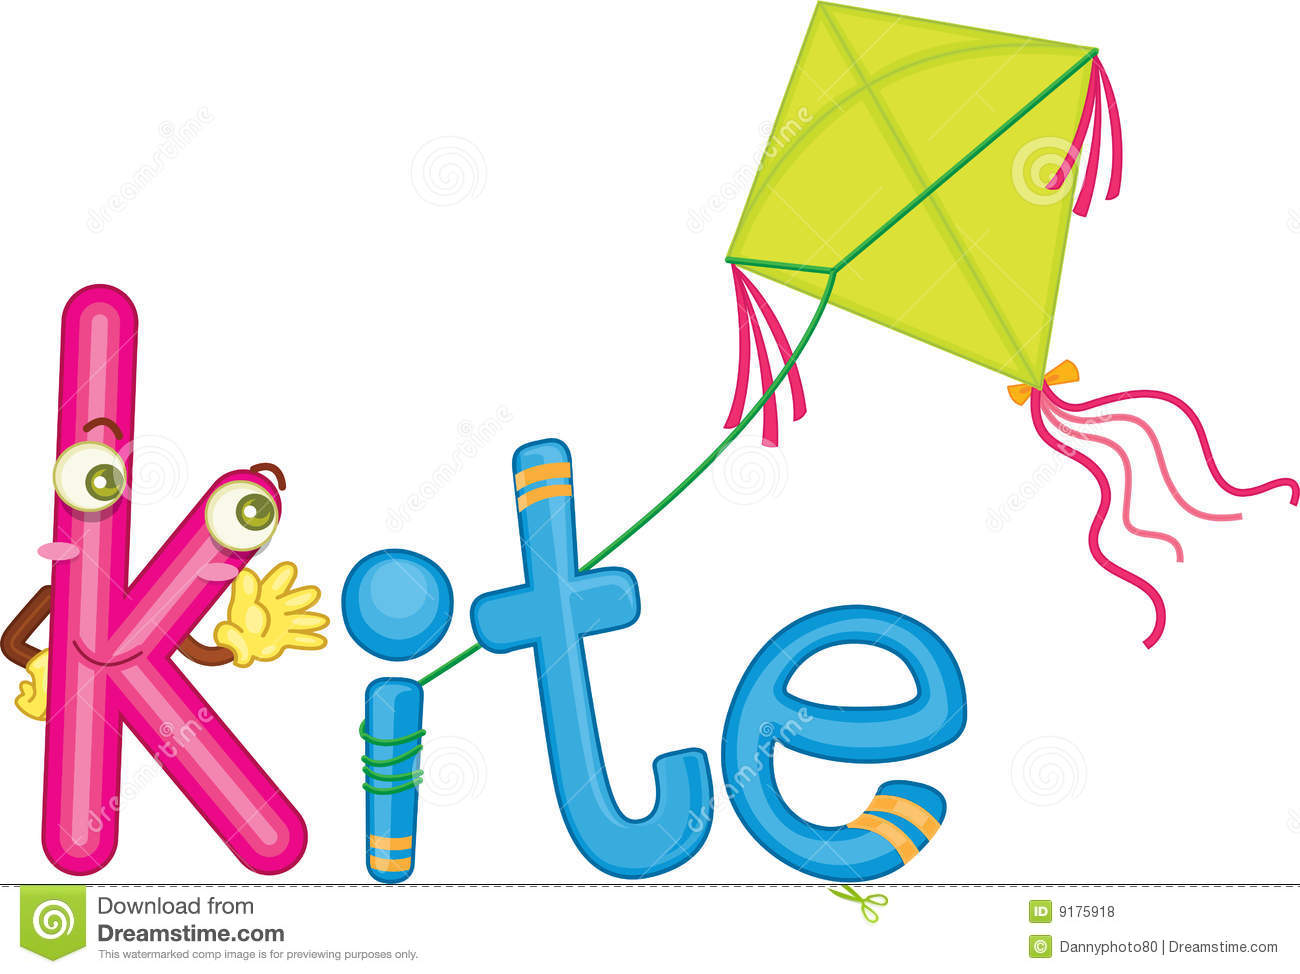 k for kite royalty free stock photos